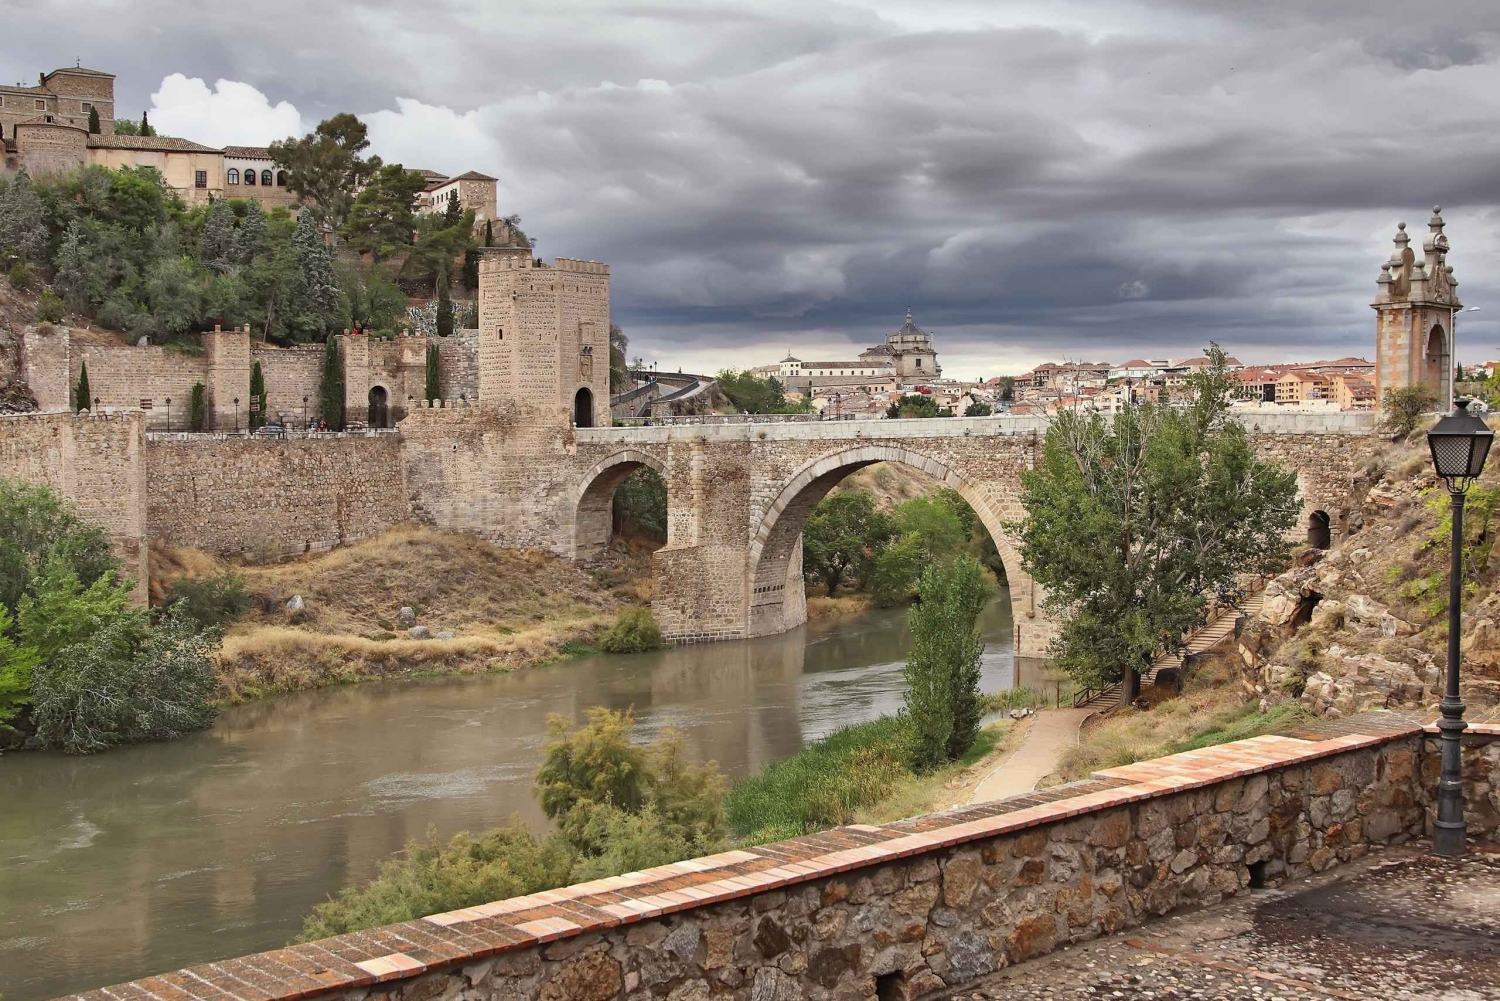 Toledo: Private Tour with the Cathedral Visit